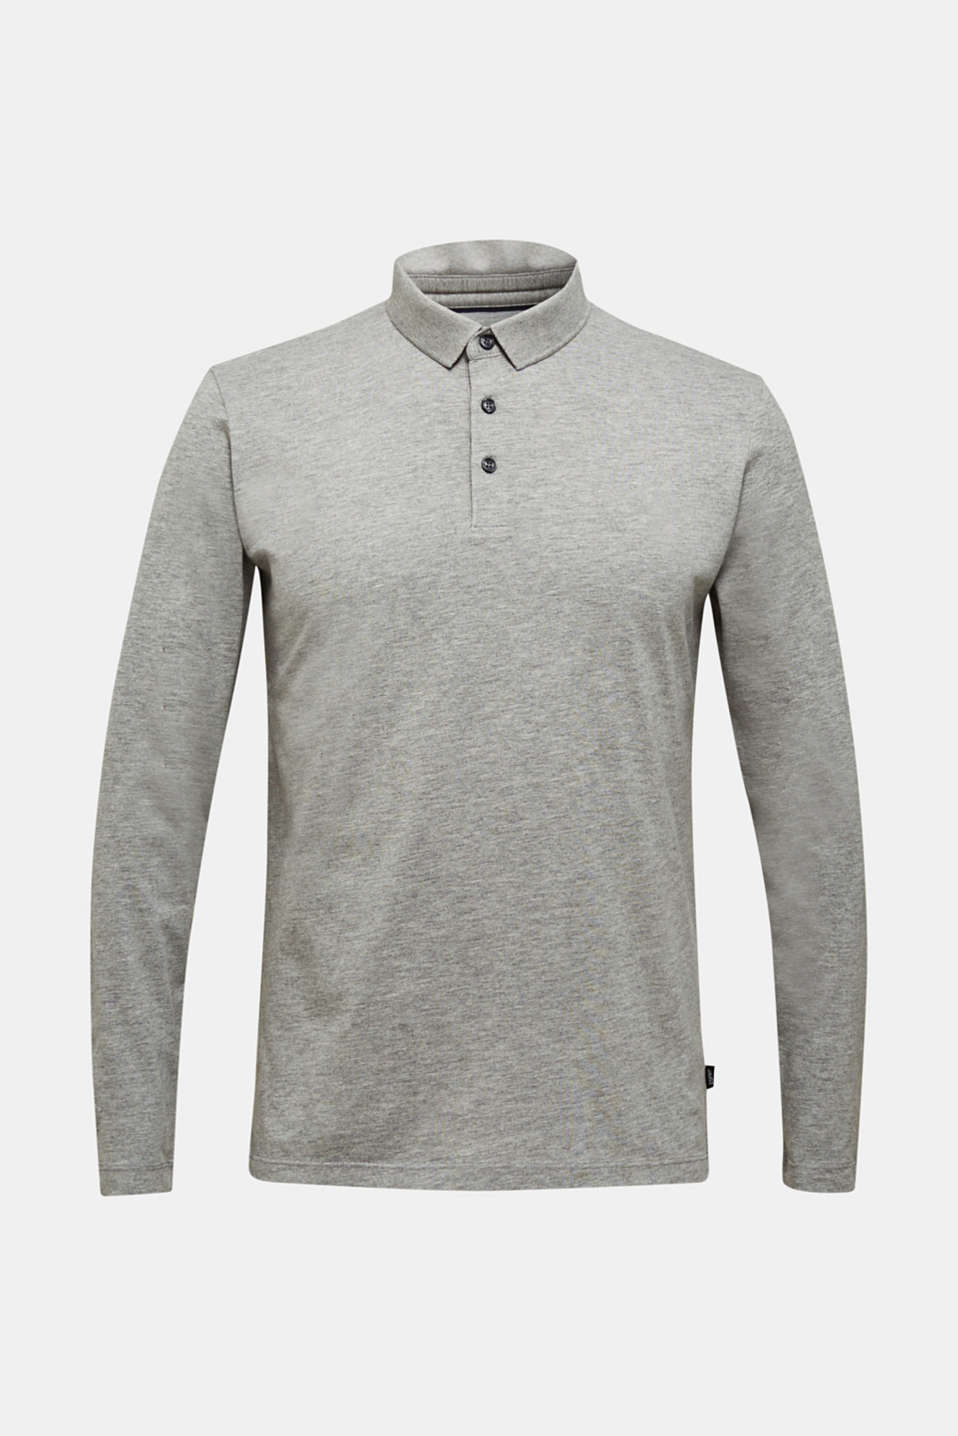 Jersey long sleeve top with a polo shirt collar, MEDIUM GREY 5, detail image number 7